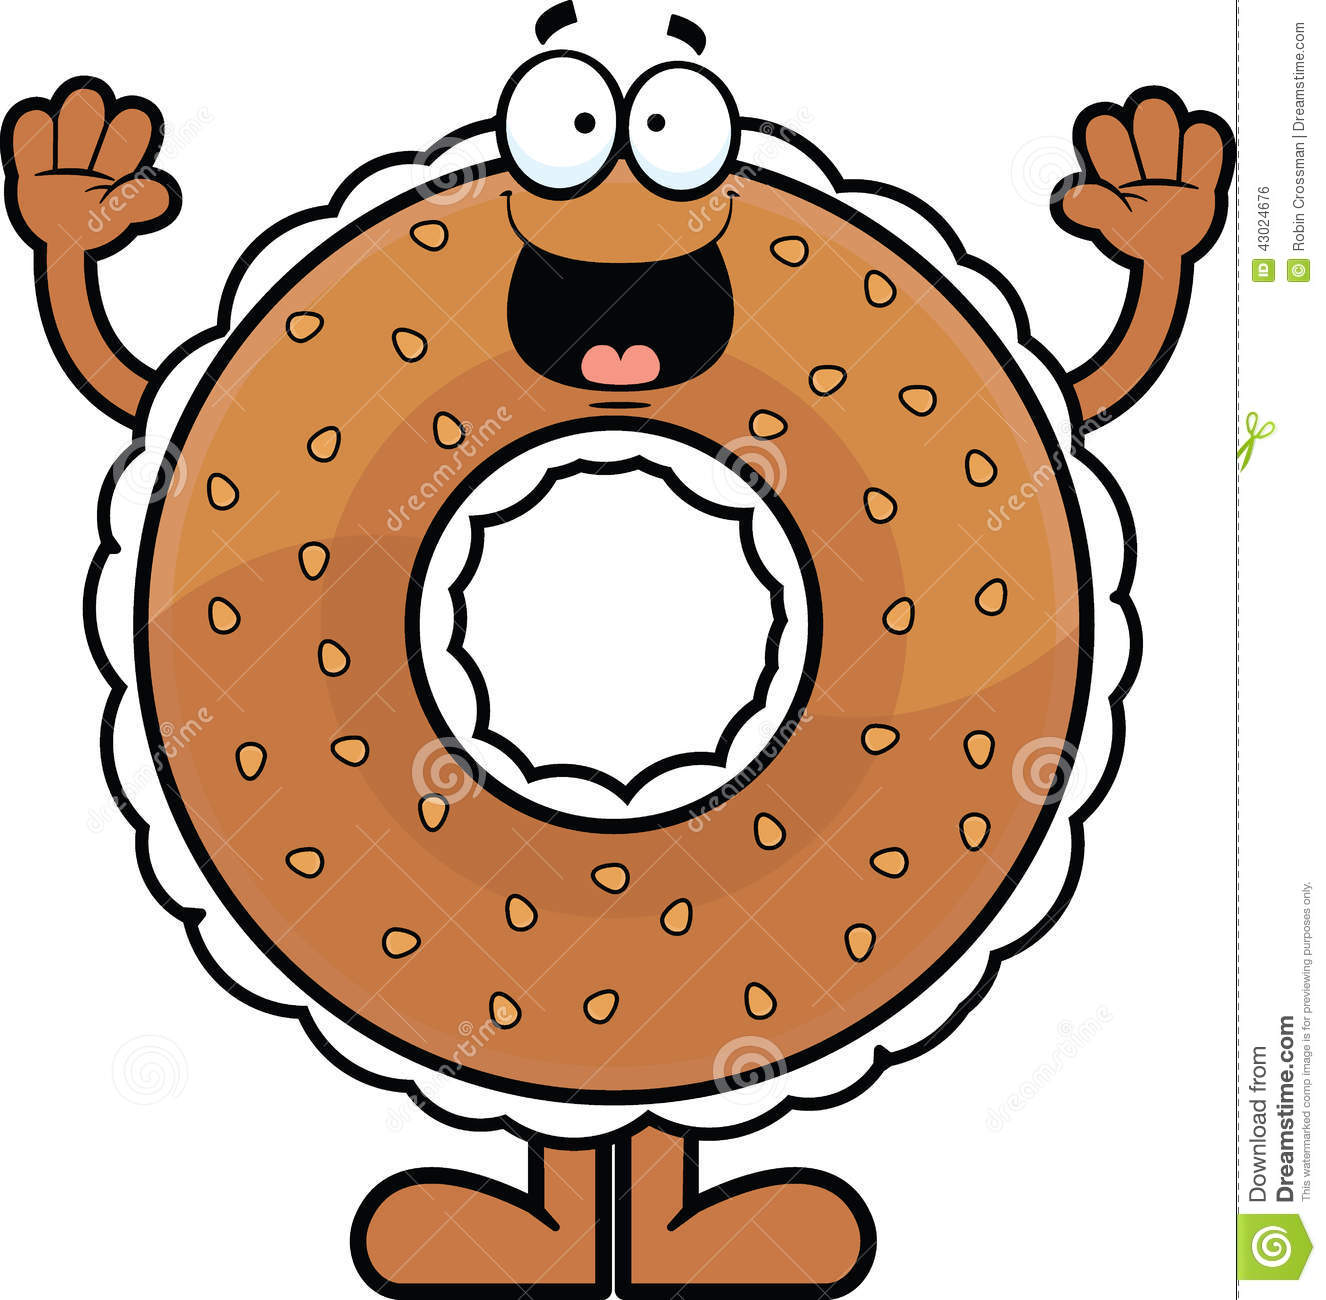 Free clipart bagel with cream cheese.